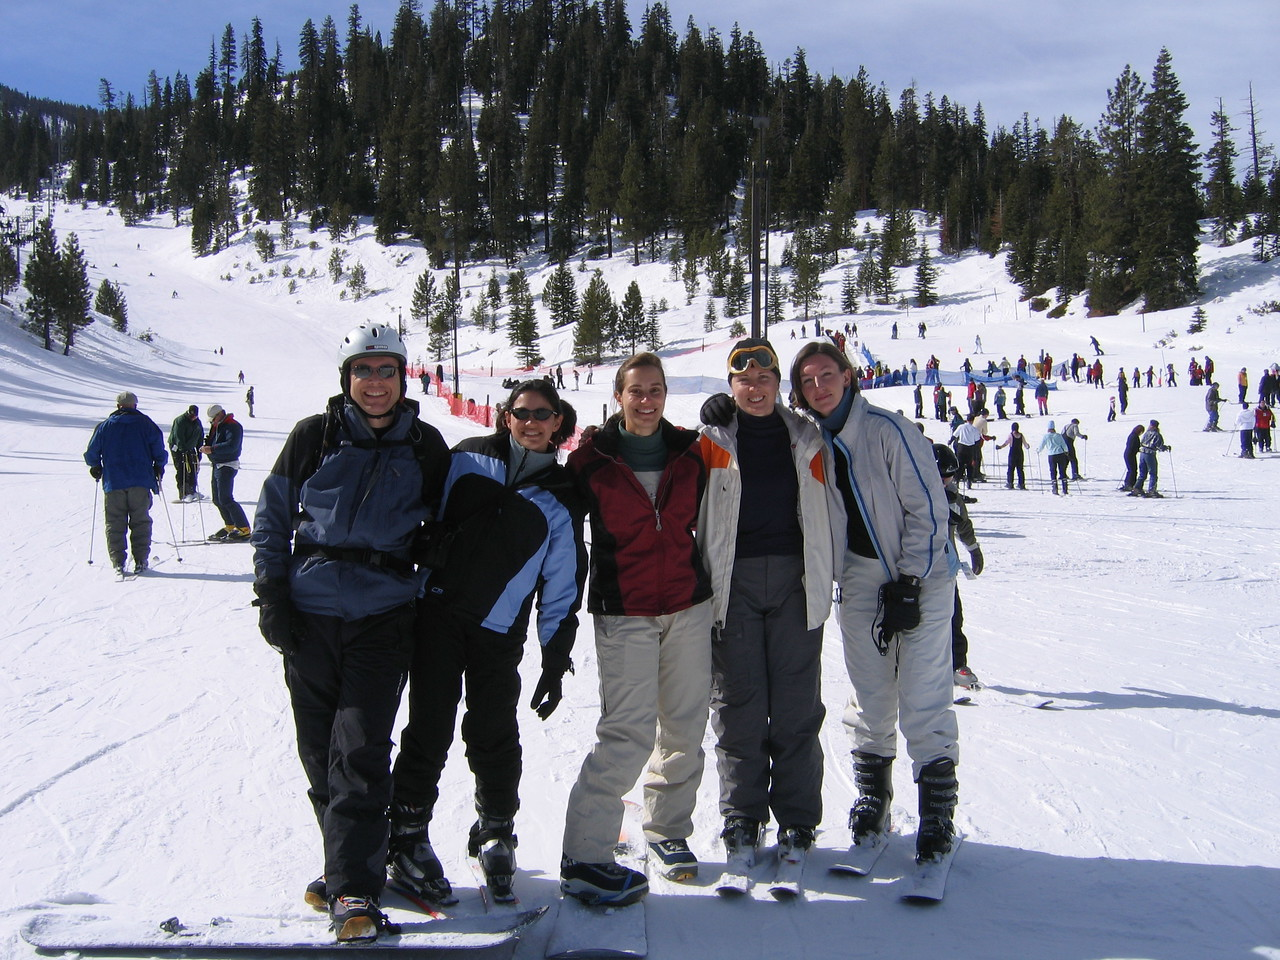 The gang, minus Becky. L-R: Eric, me, Birgit, Carrie, Linda.